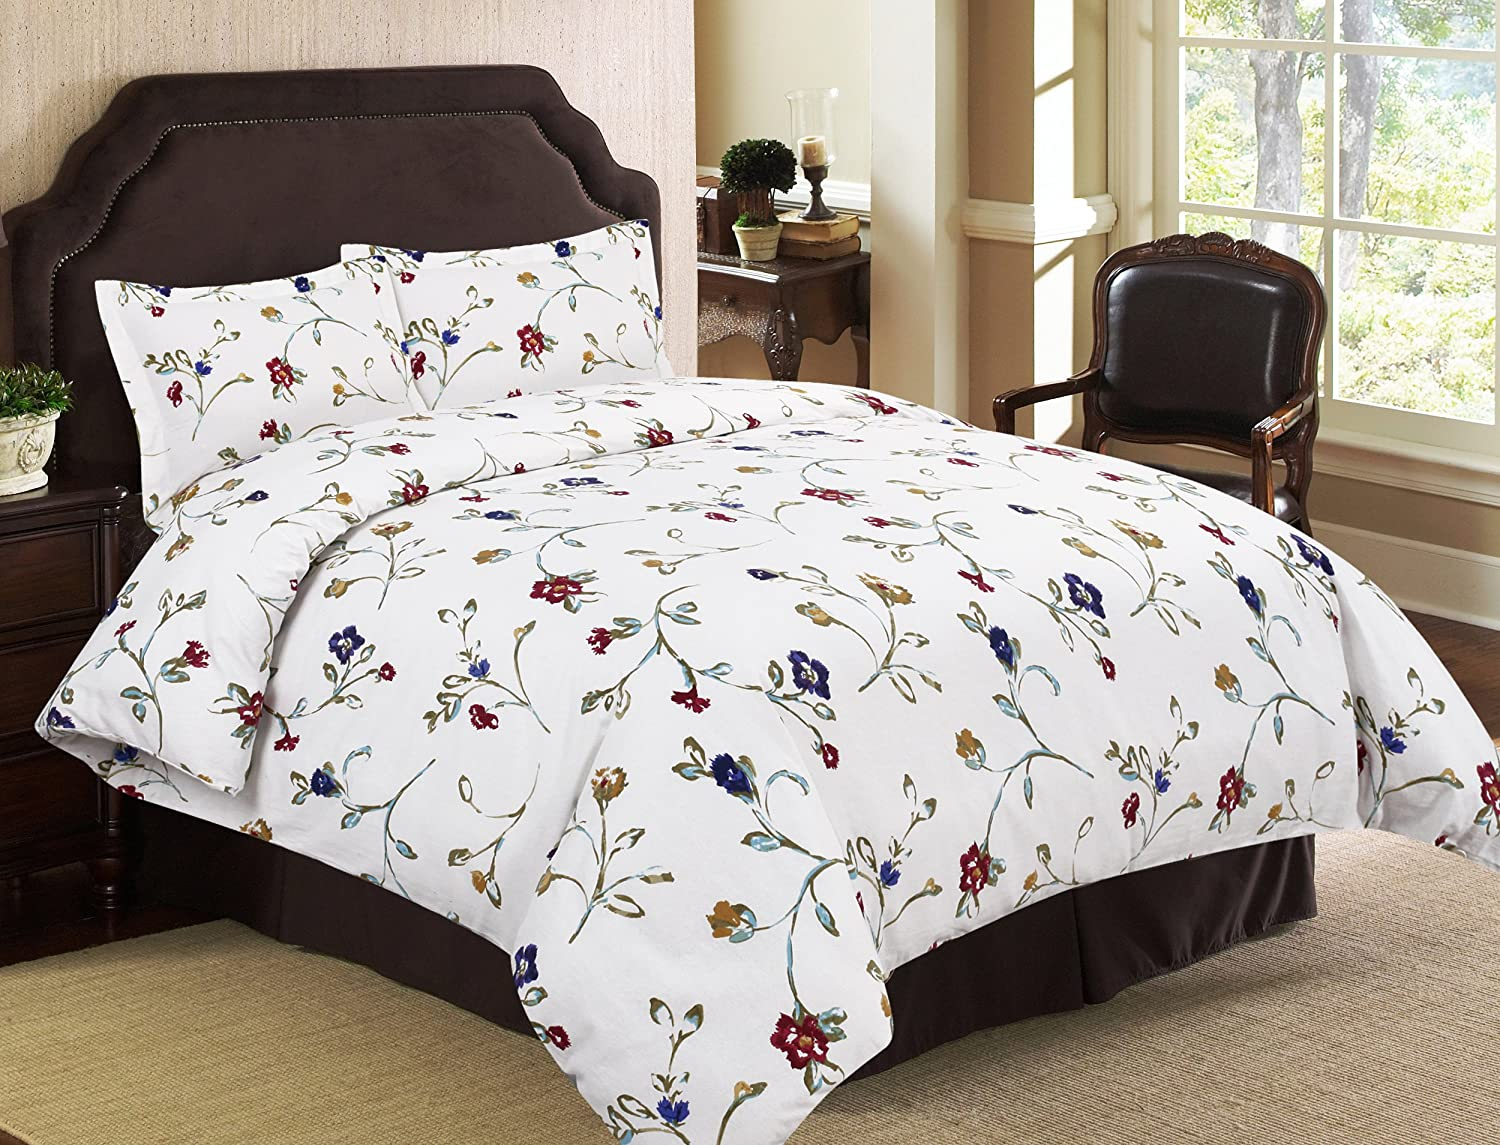 remodel the oh to deer king company oz pertaining duvet flannel cover store